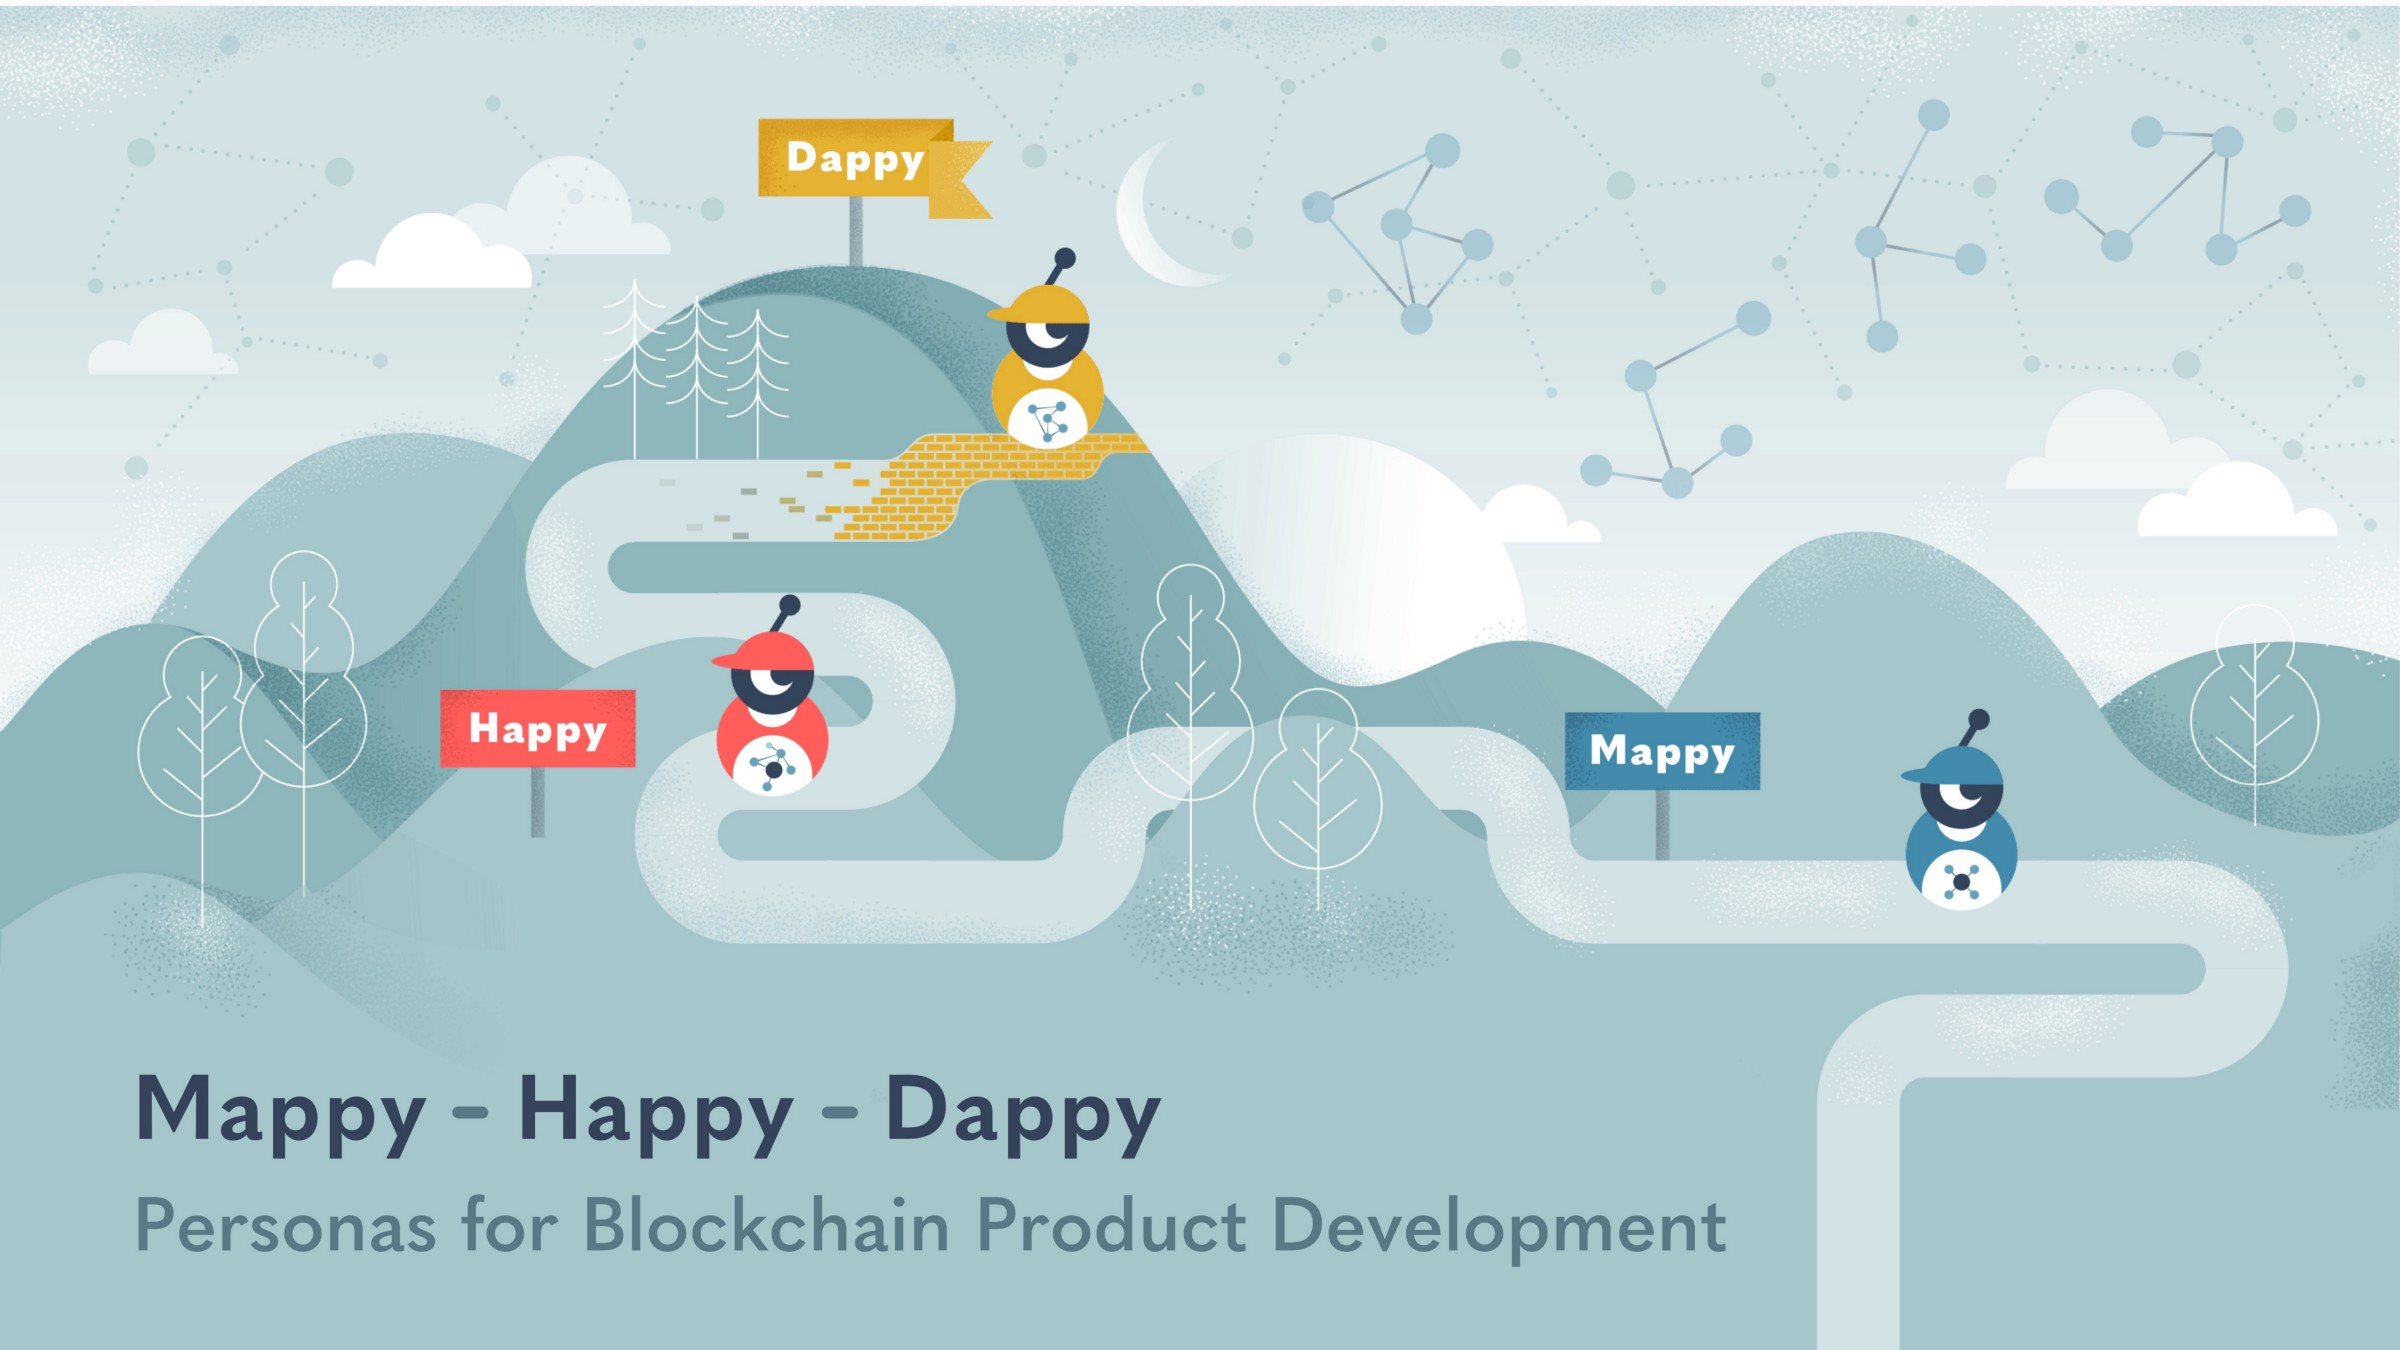 /meet-mappy-happy-and-dappy-personas-for-blockchain-product-management-895bfebad94b feature image